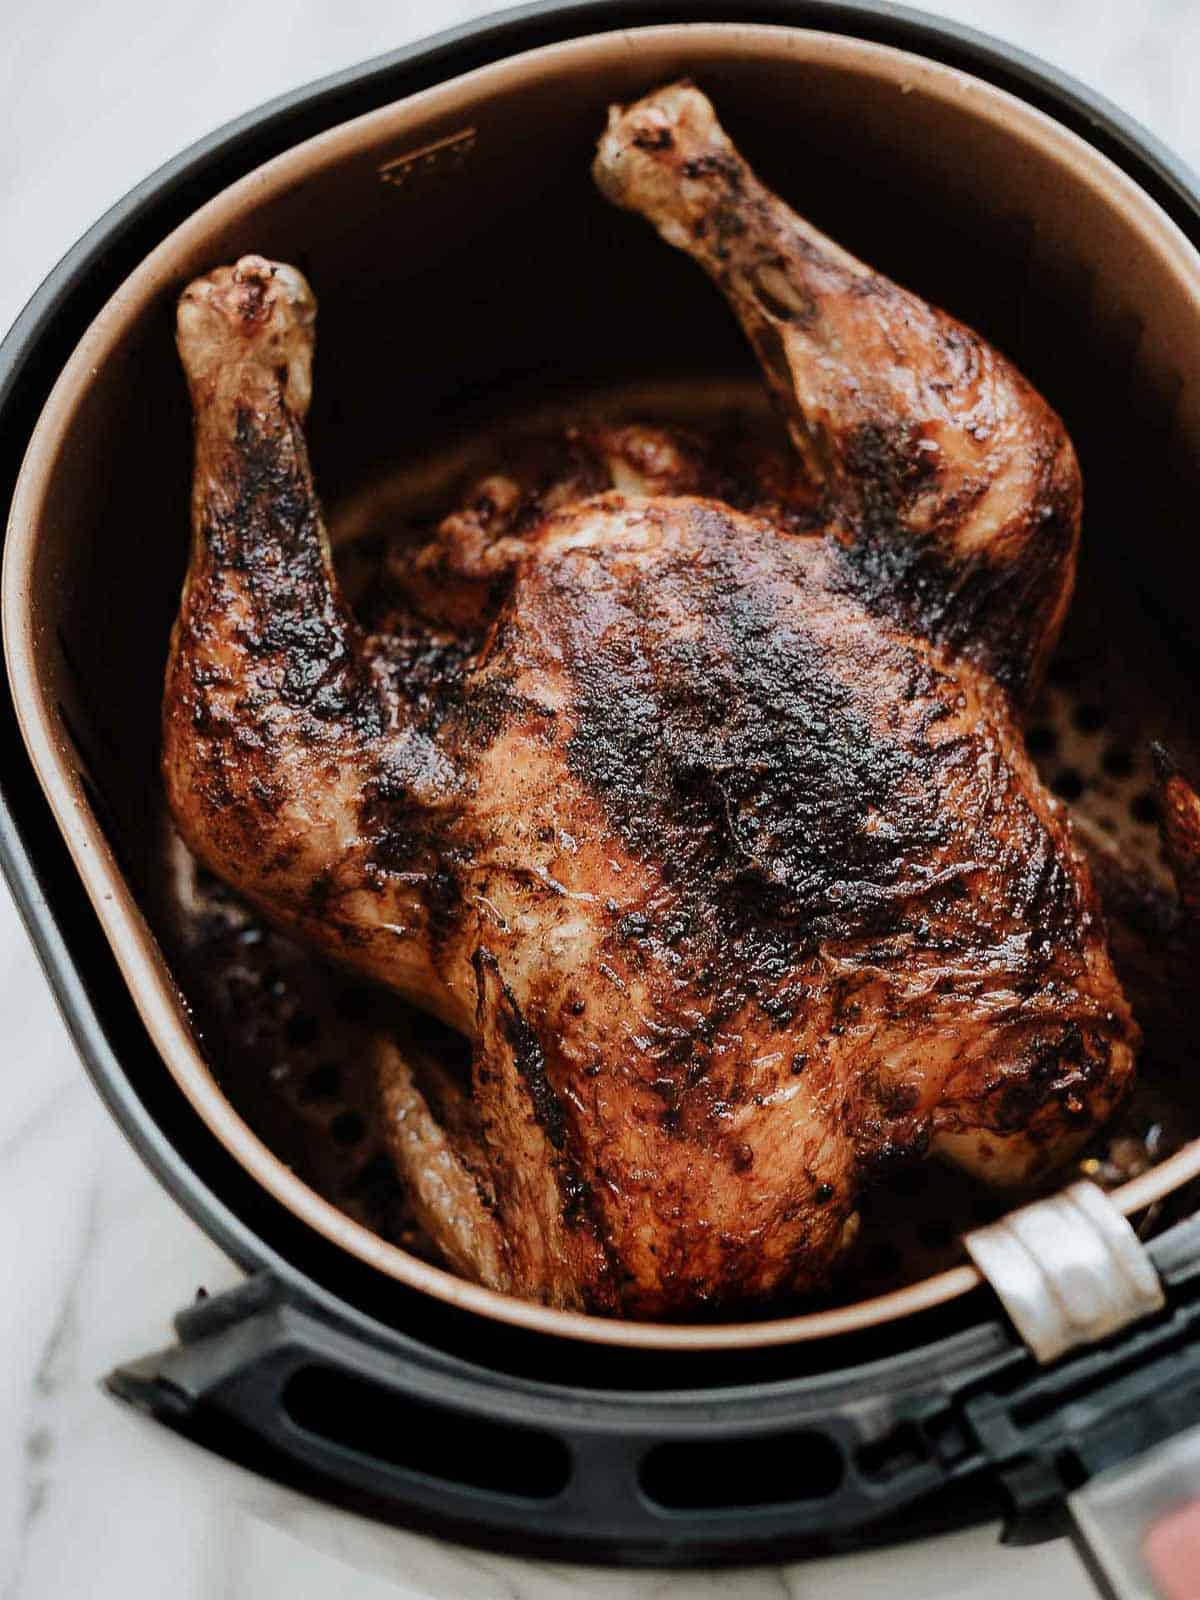 Air fryer whole chicken in the basket.